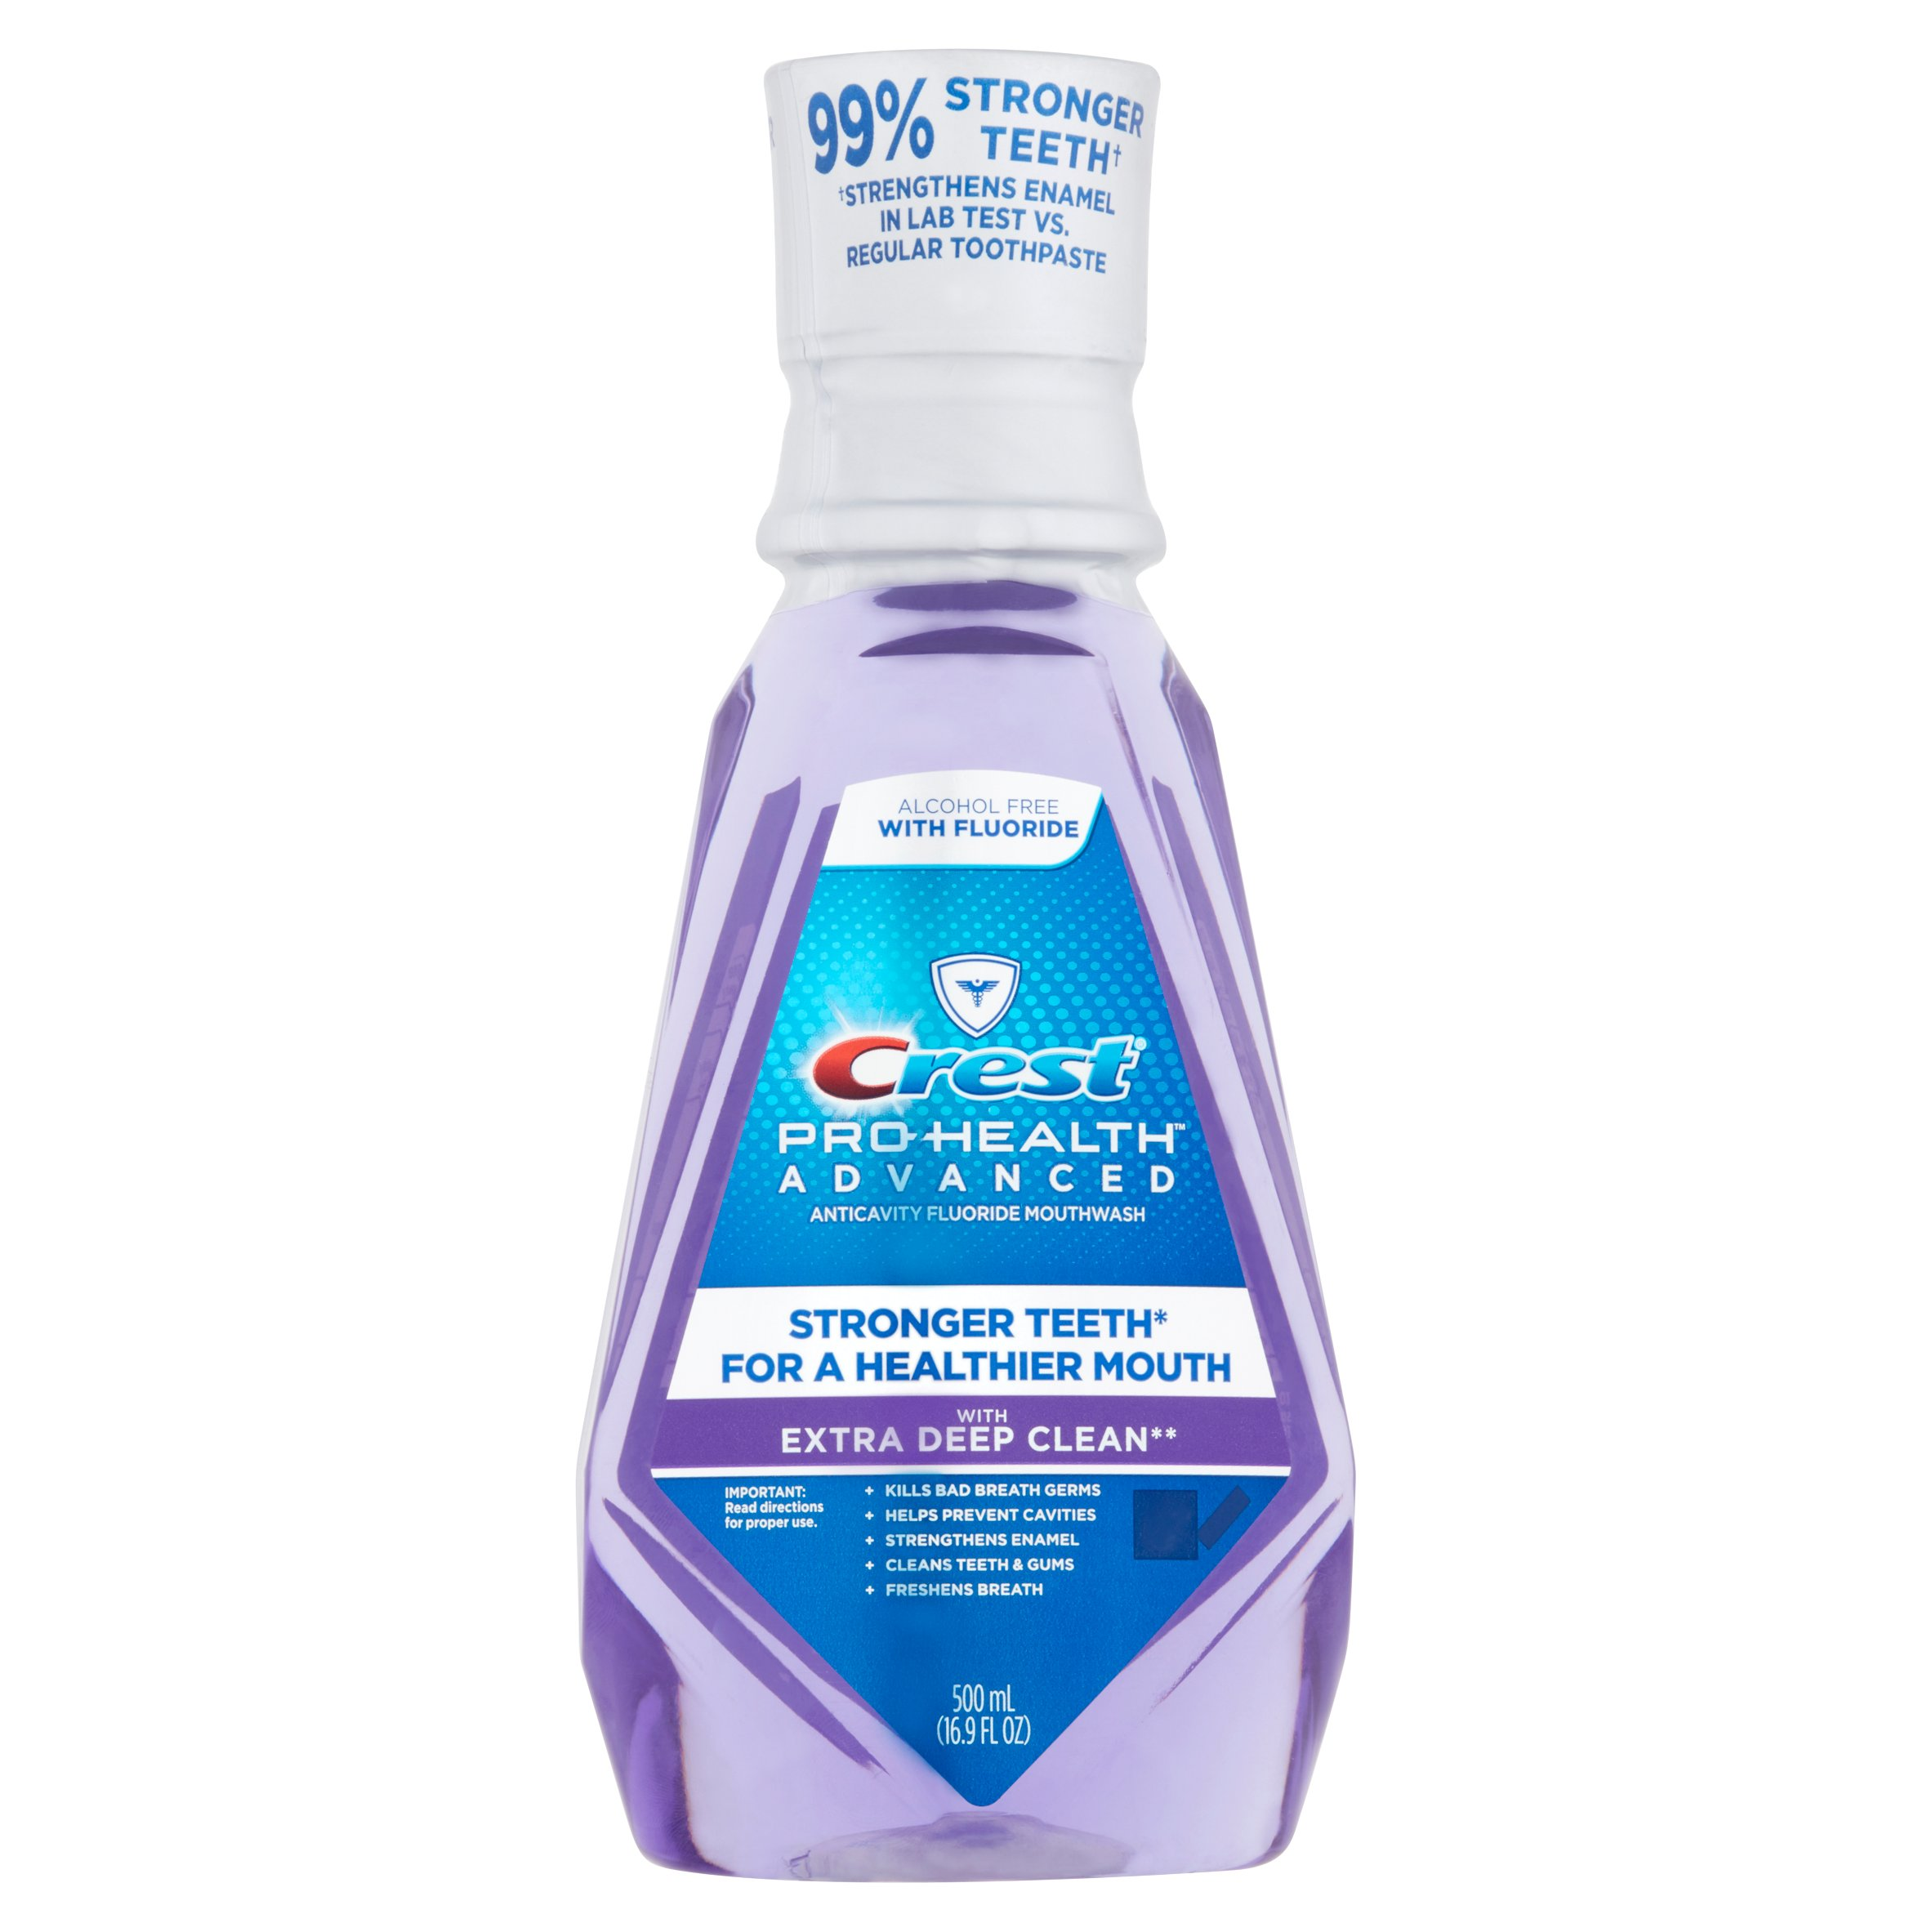 Crest Pro-Health Advanced with Extra Deep Clean Clean Mint Flavor Mouthwash, 16.9 fl oz